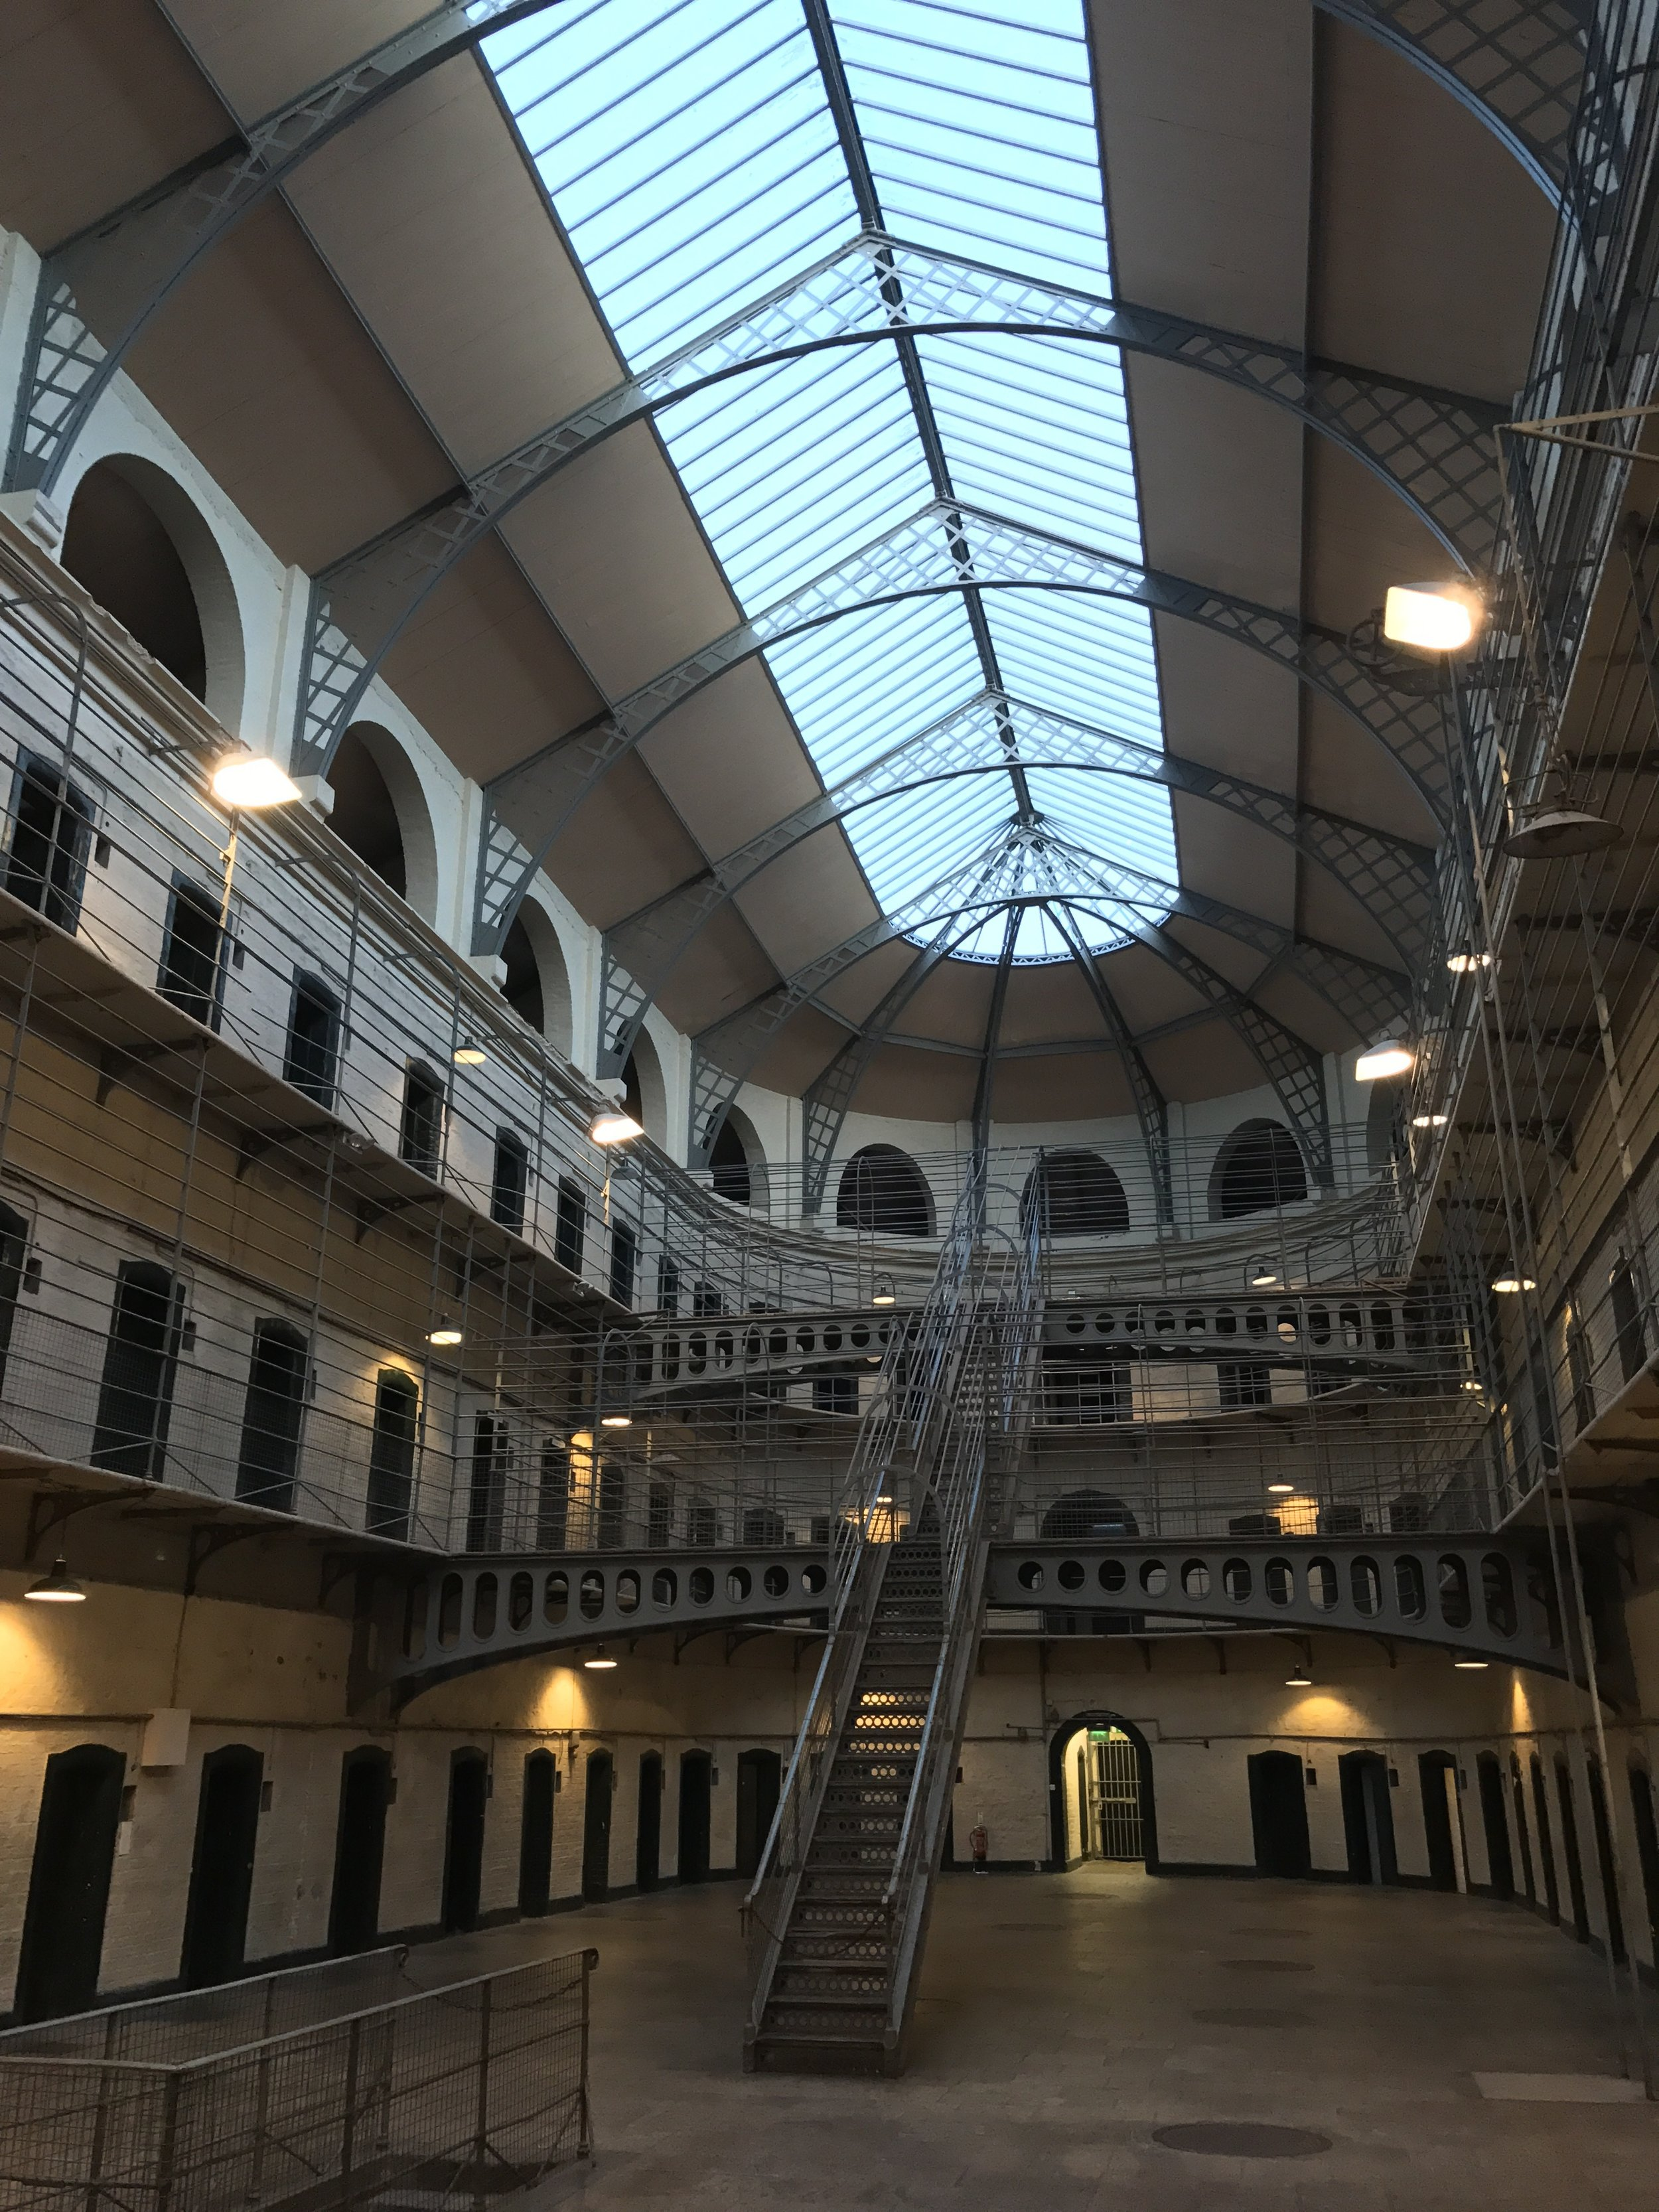 This surreal ward in Kilmainham Gaol is the most photographed and unique architectural location in the entire facility.